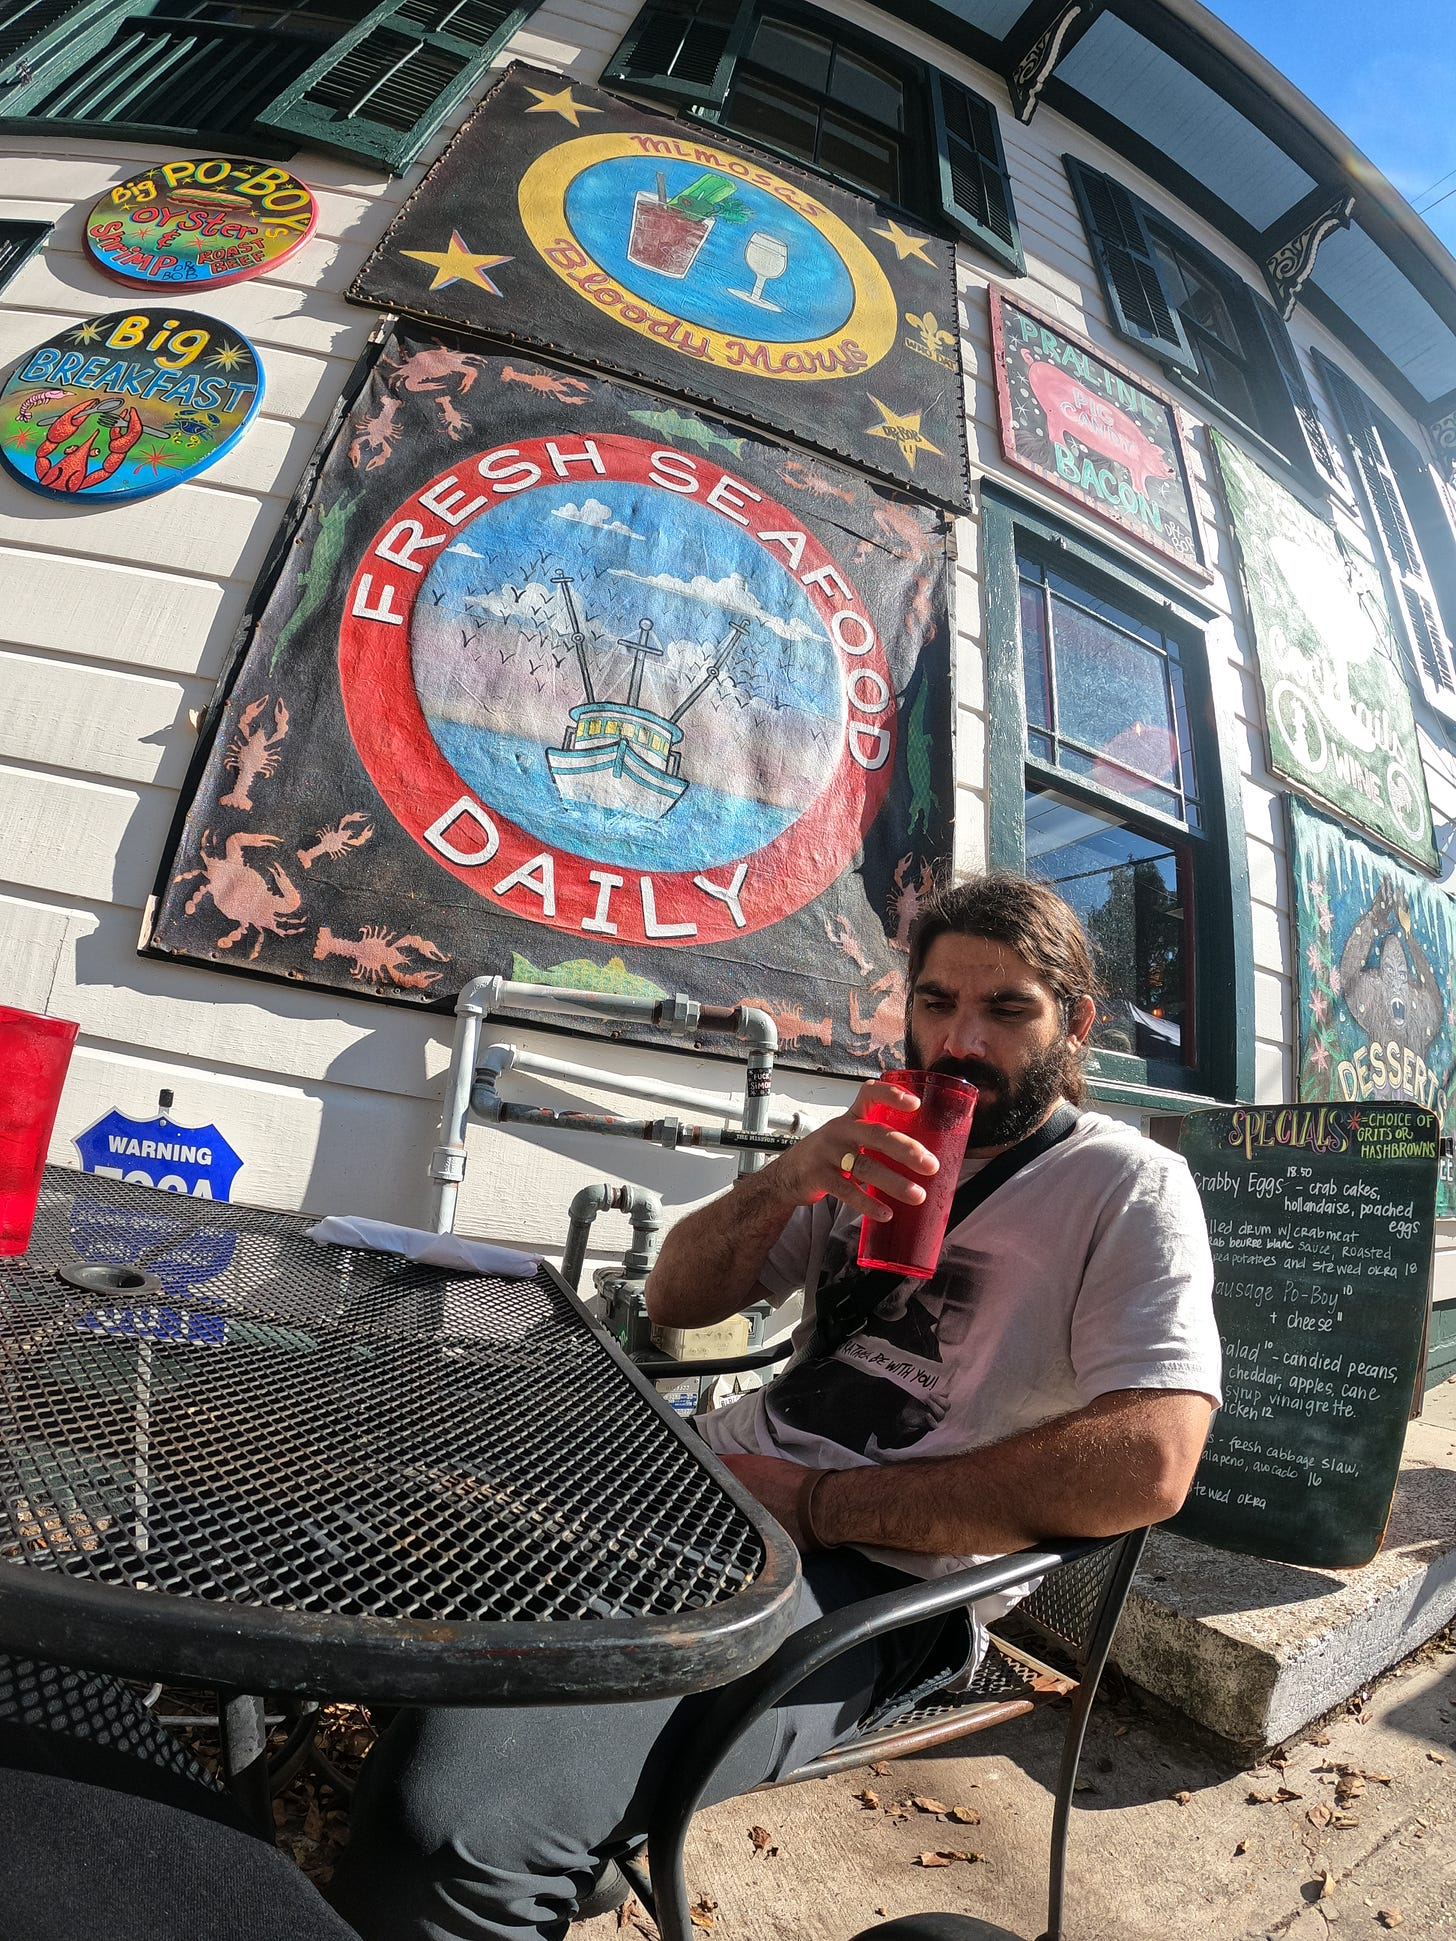 Anthony sipping on his drink sitting in the hot sun outside at Elizabeth's Restaurant